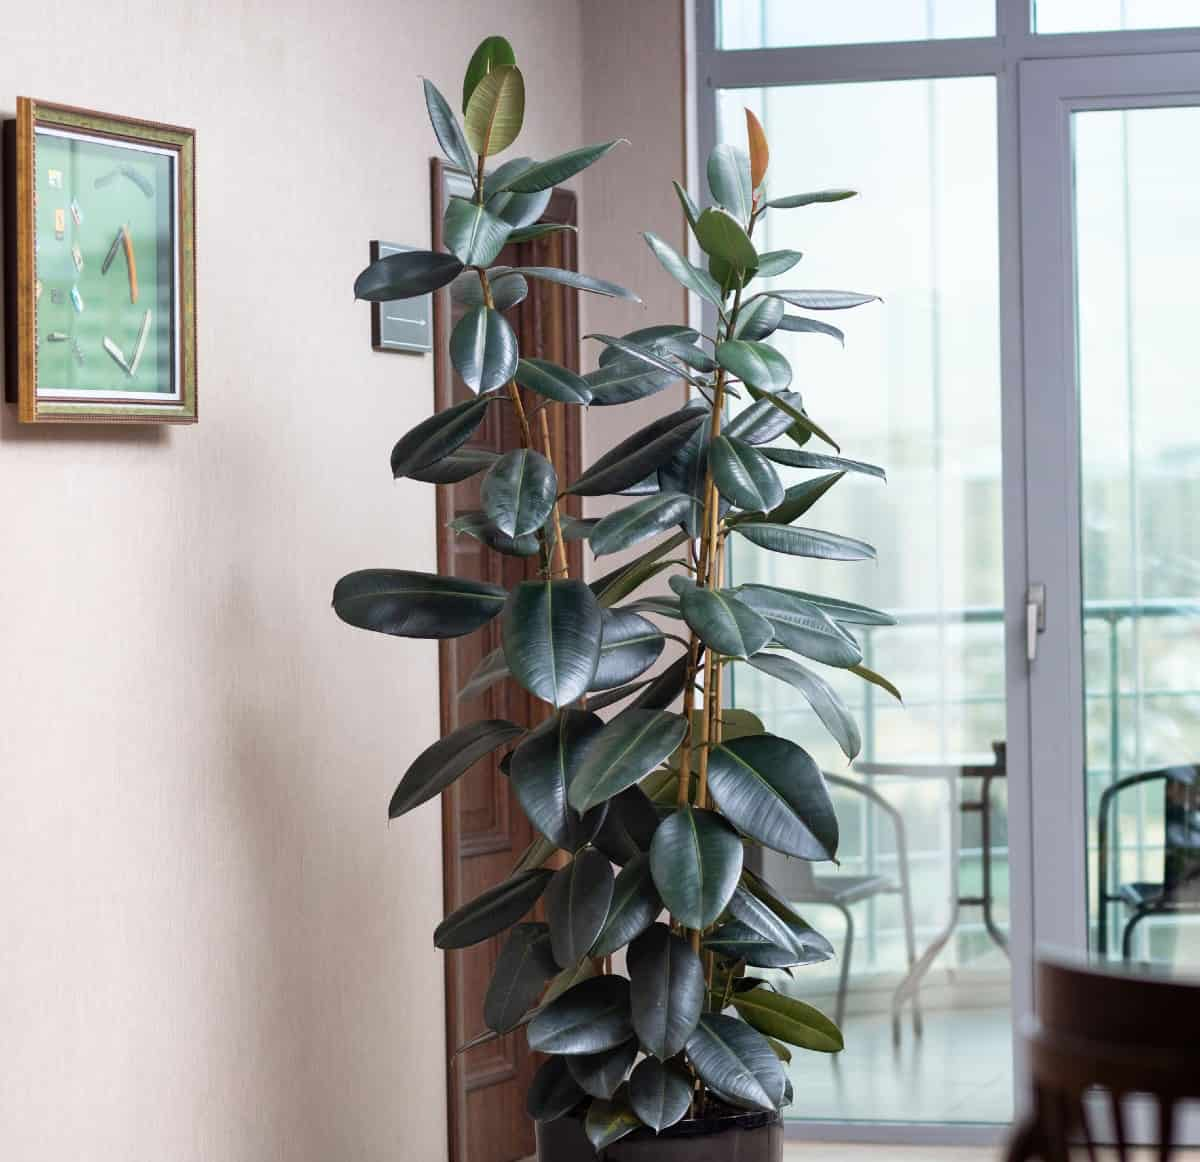 Rubber plants can grow up to ten feet tall.